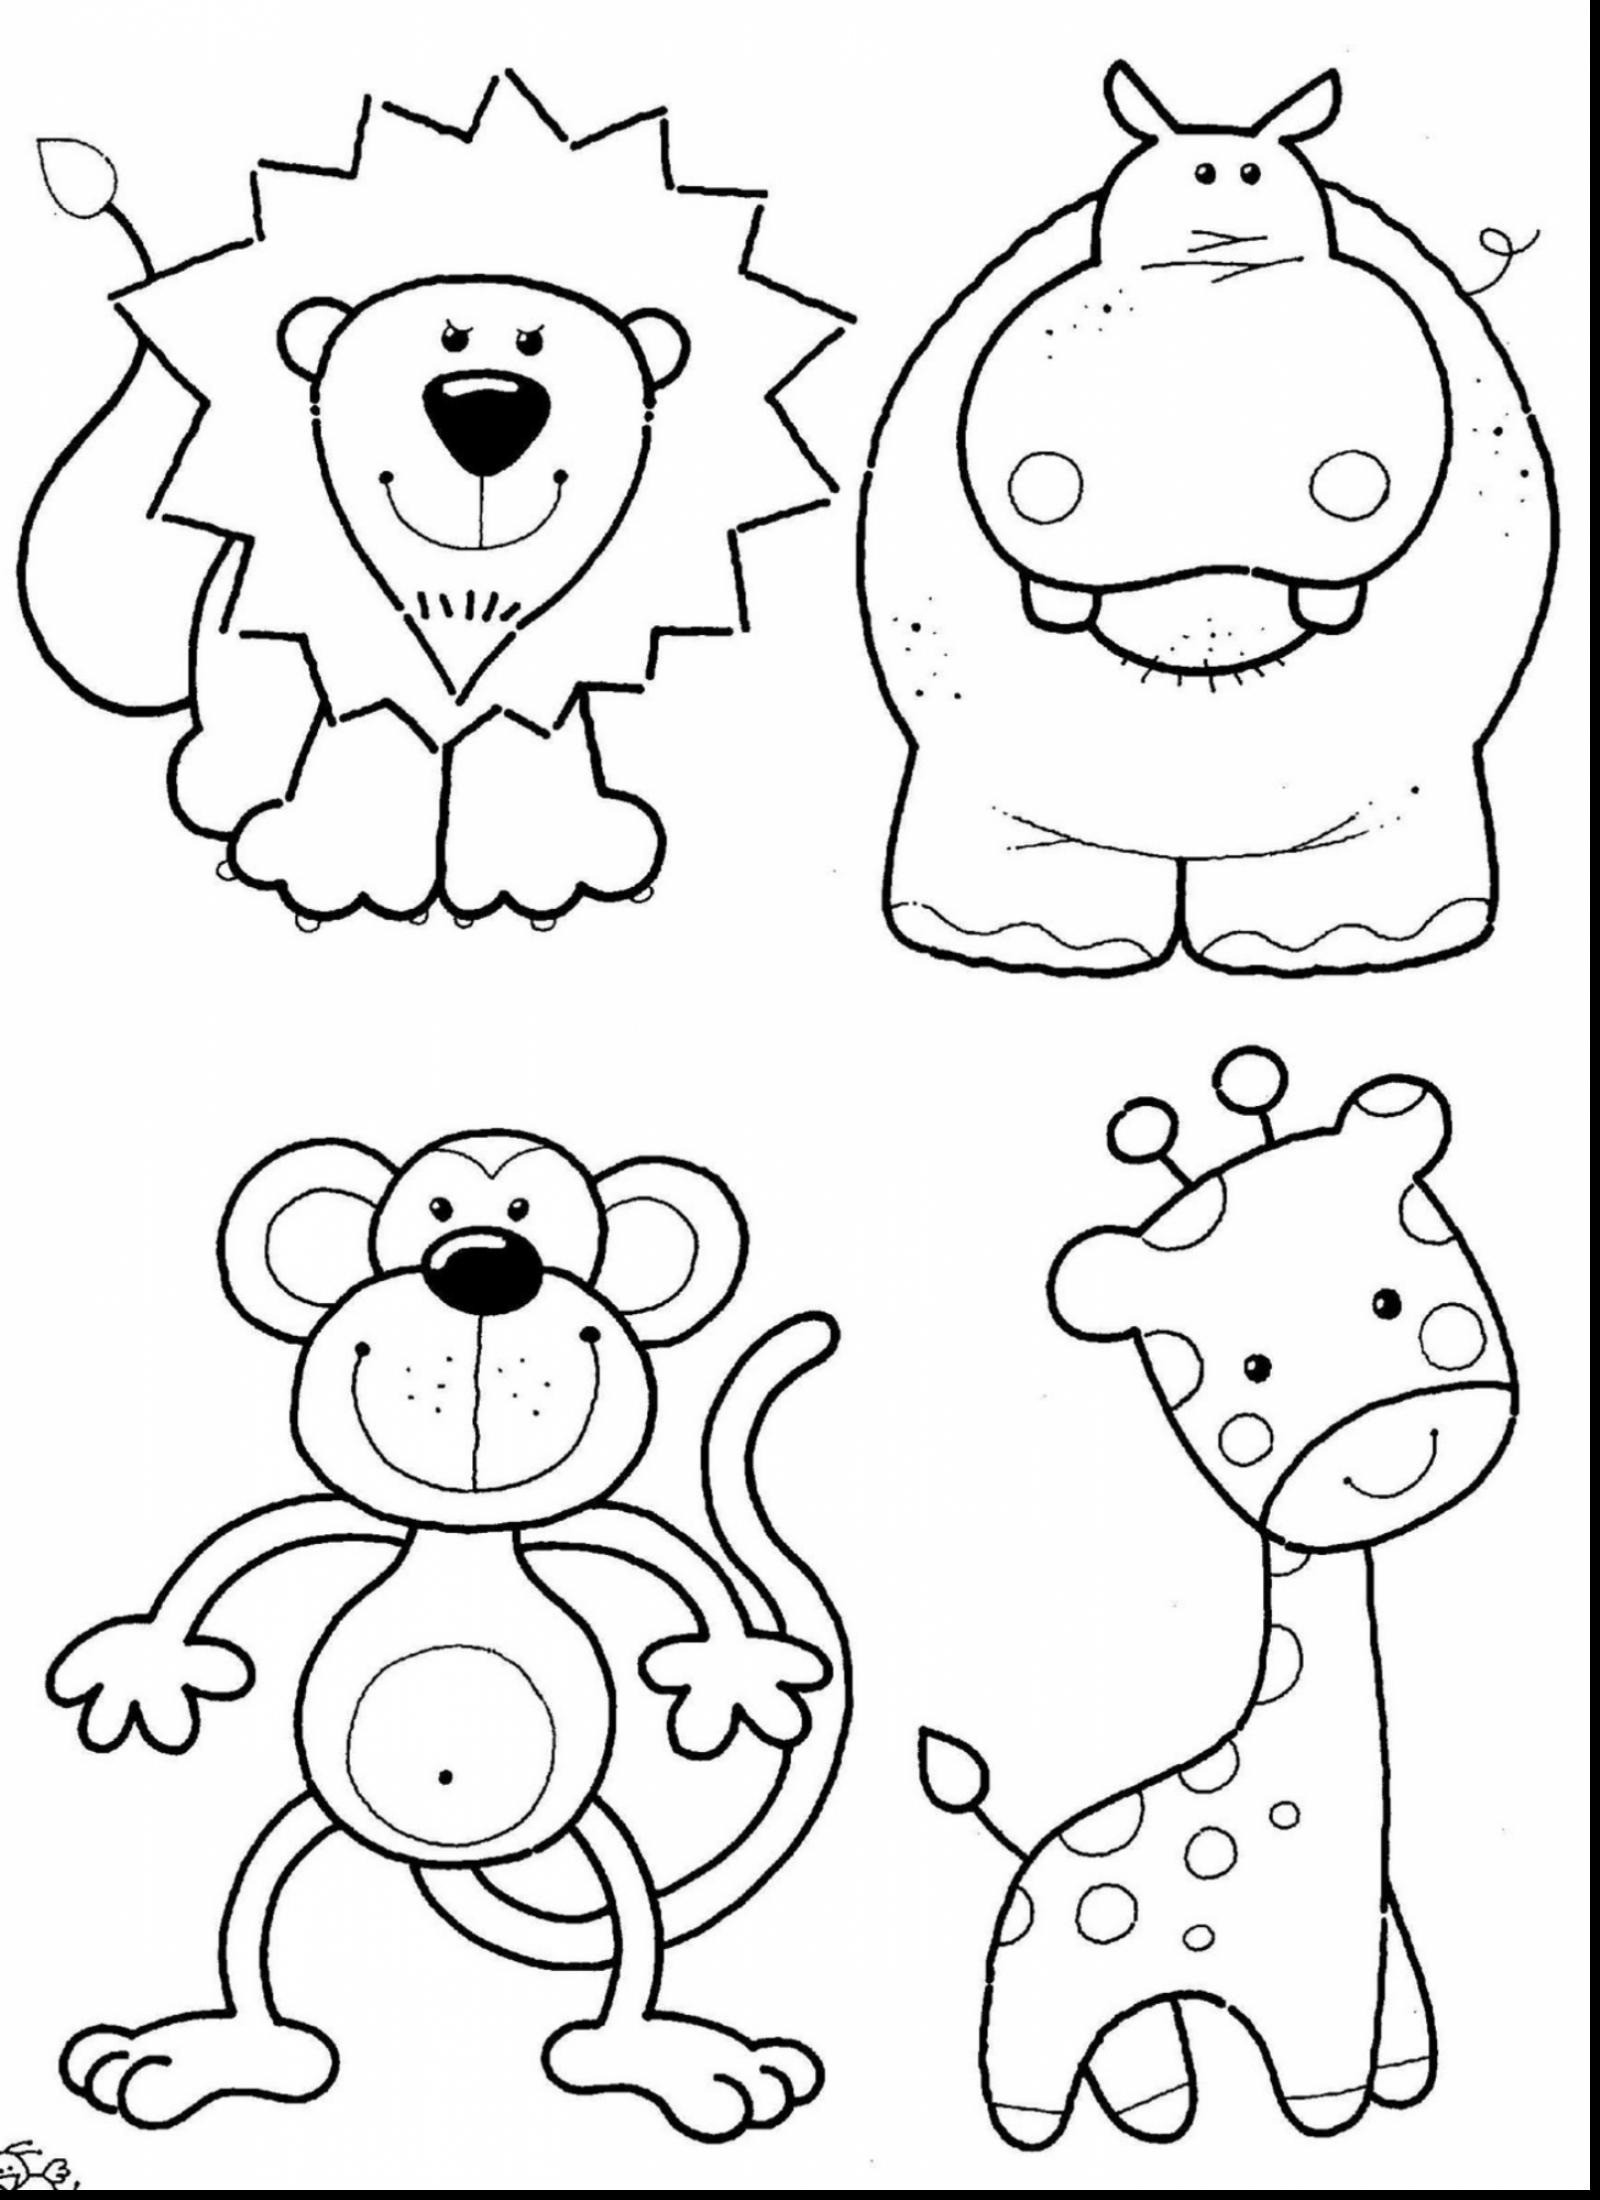 zoo-animals-coloring-pages-of-zoo-animals-coloring-pages Zoo Animals Coloring Pages Animal